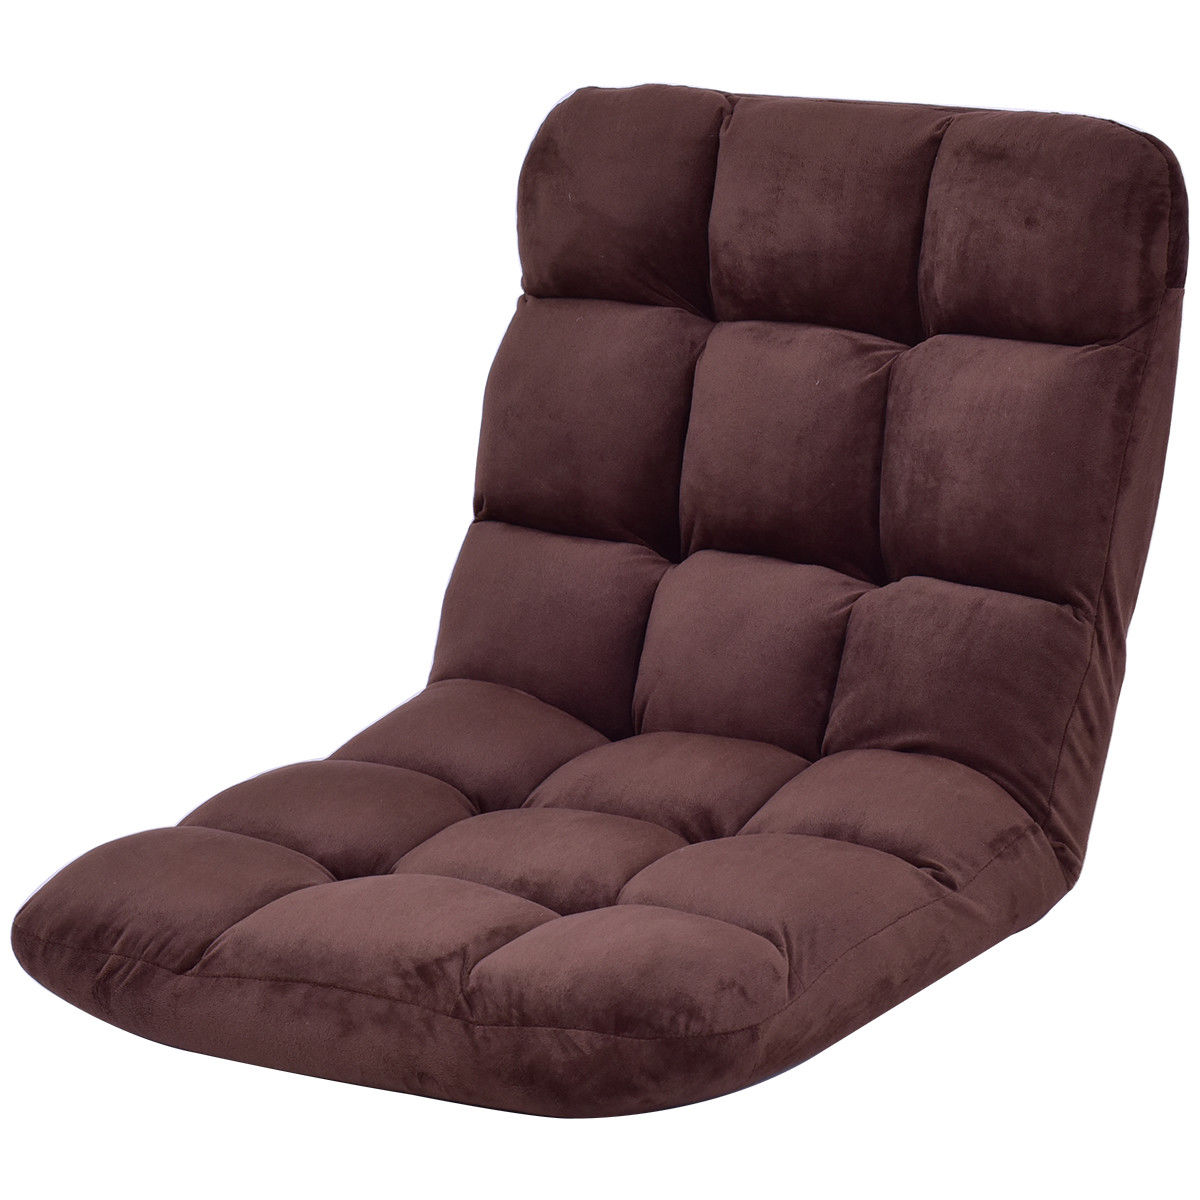 Costway Cushioned Floor Gaming Sofa Chair Folding 5 Positon Adjustable Recliner Brown